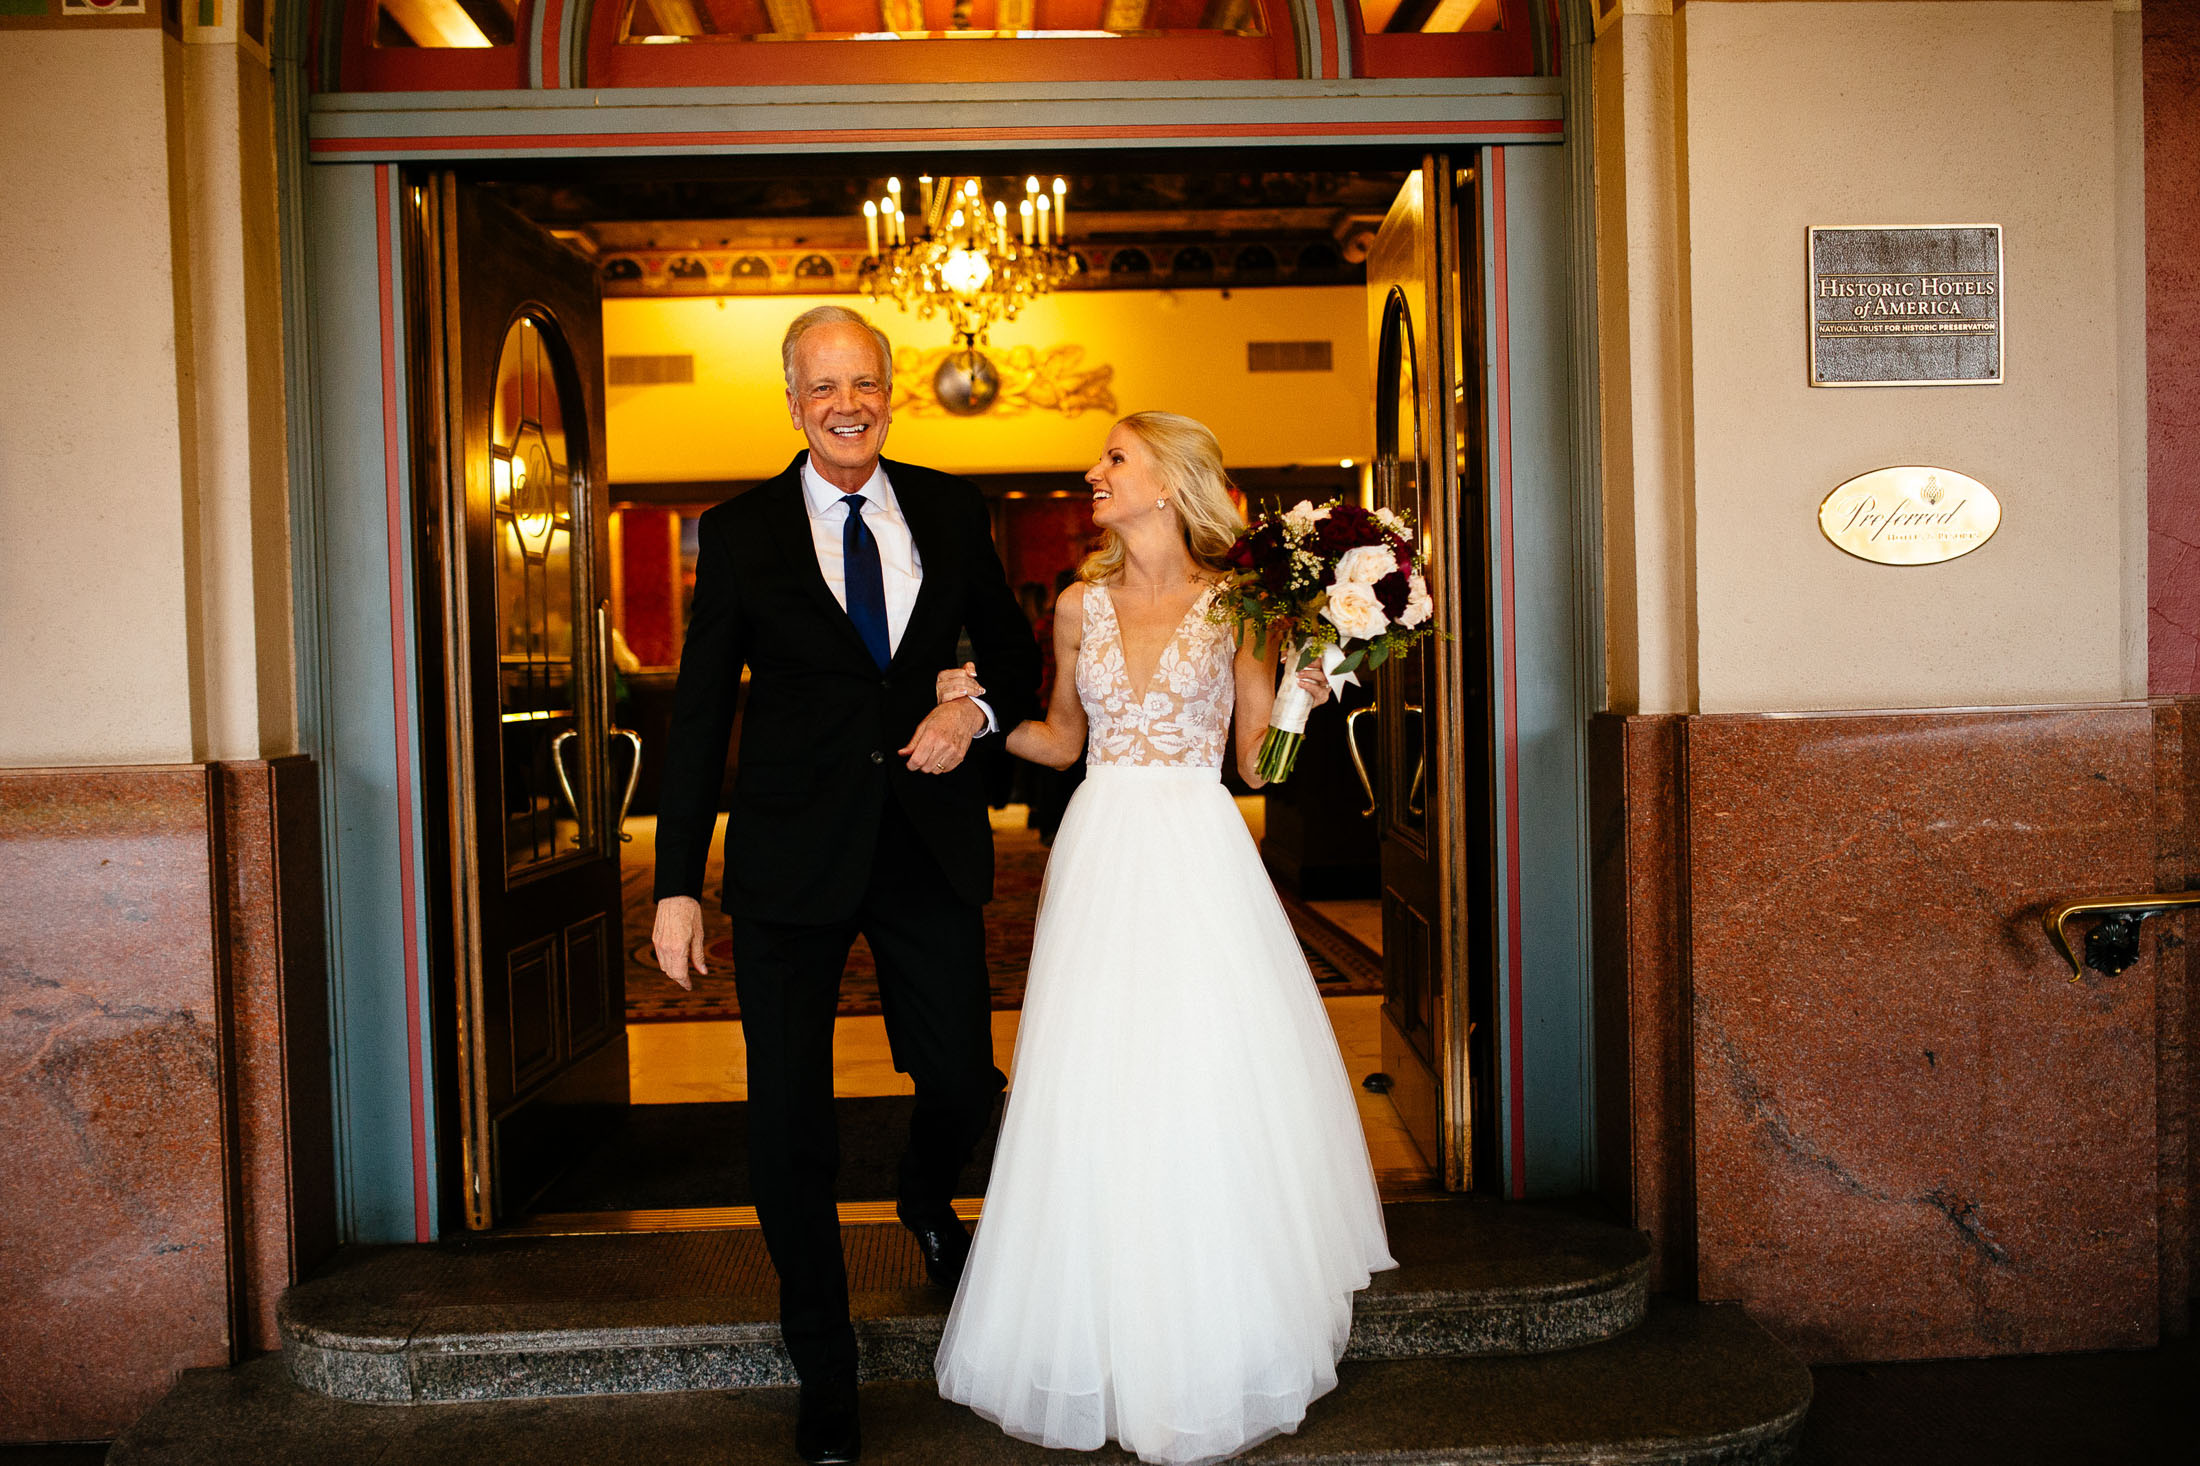 Bride holding hands and walking out the main doors of The Broadmoor Hotel.